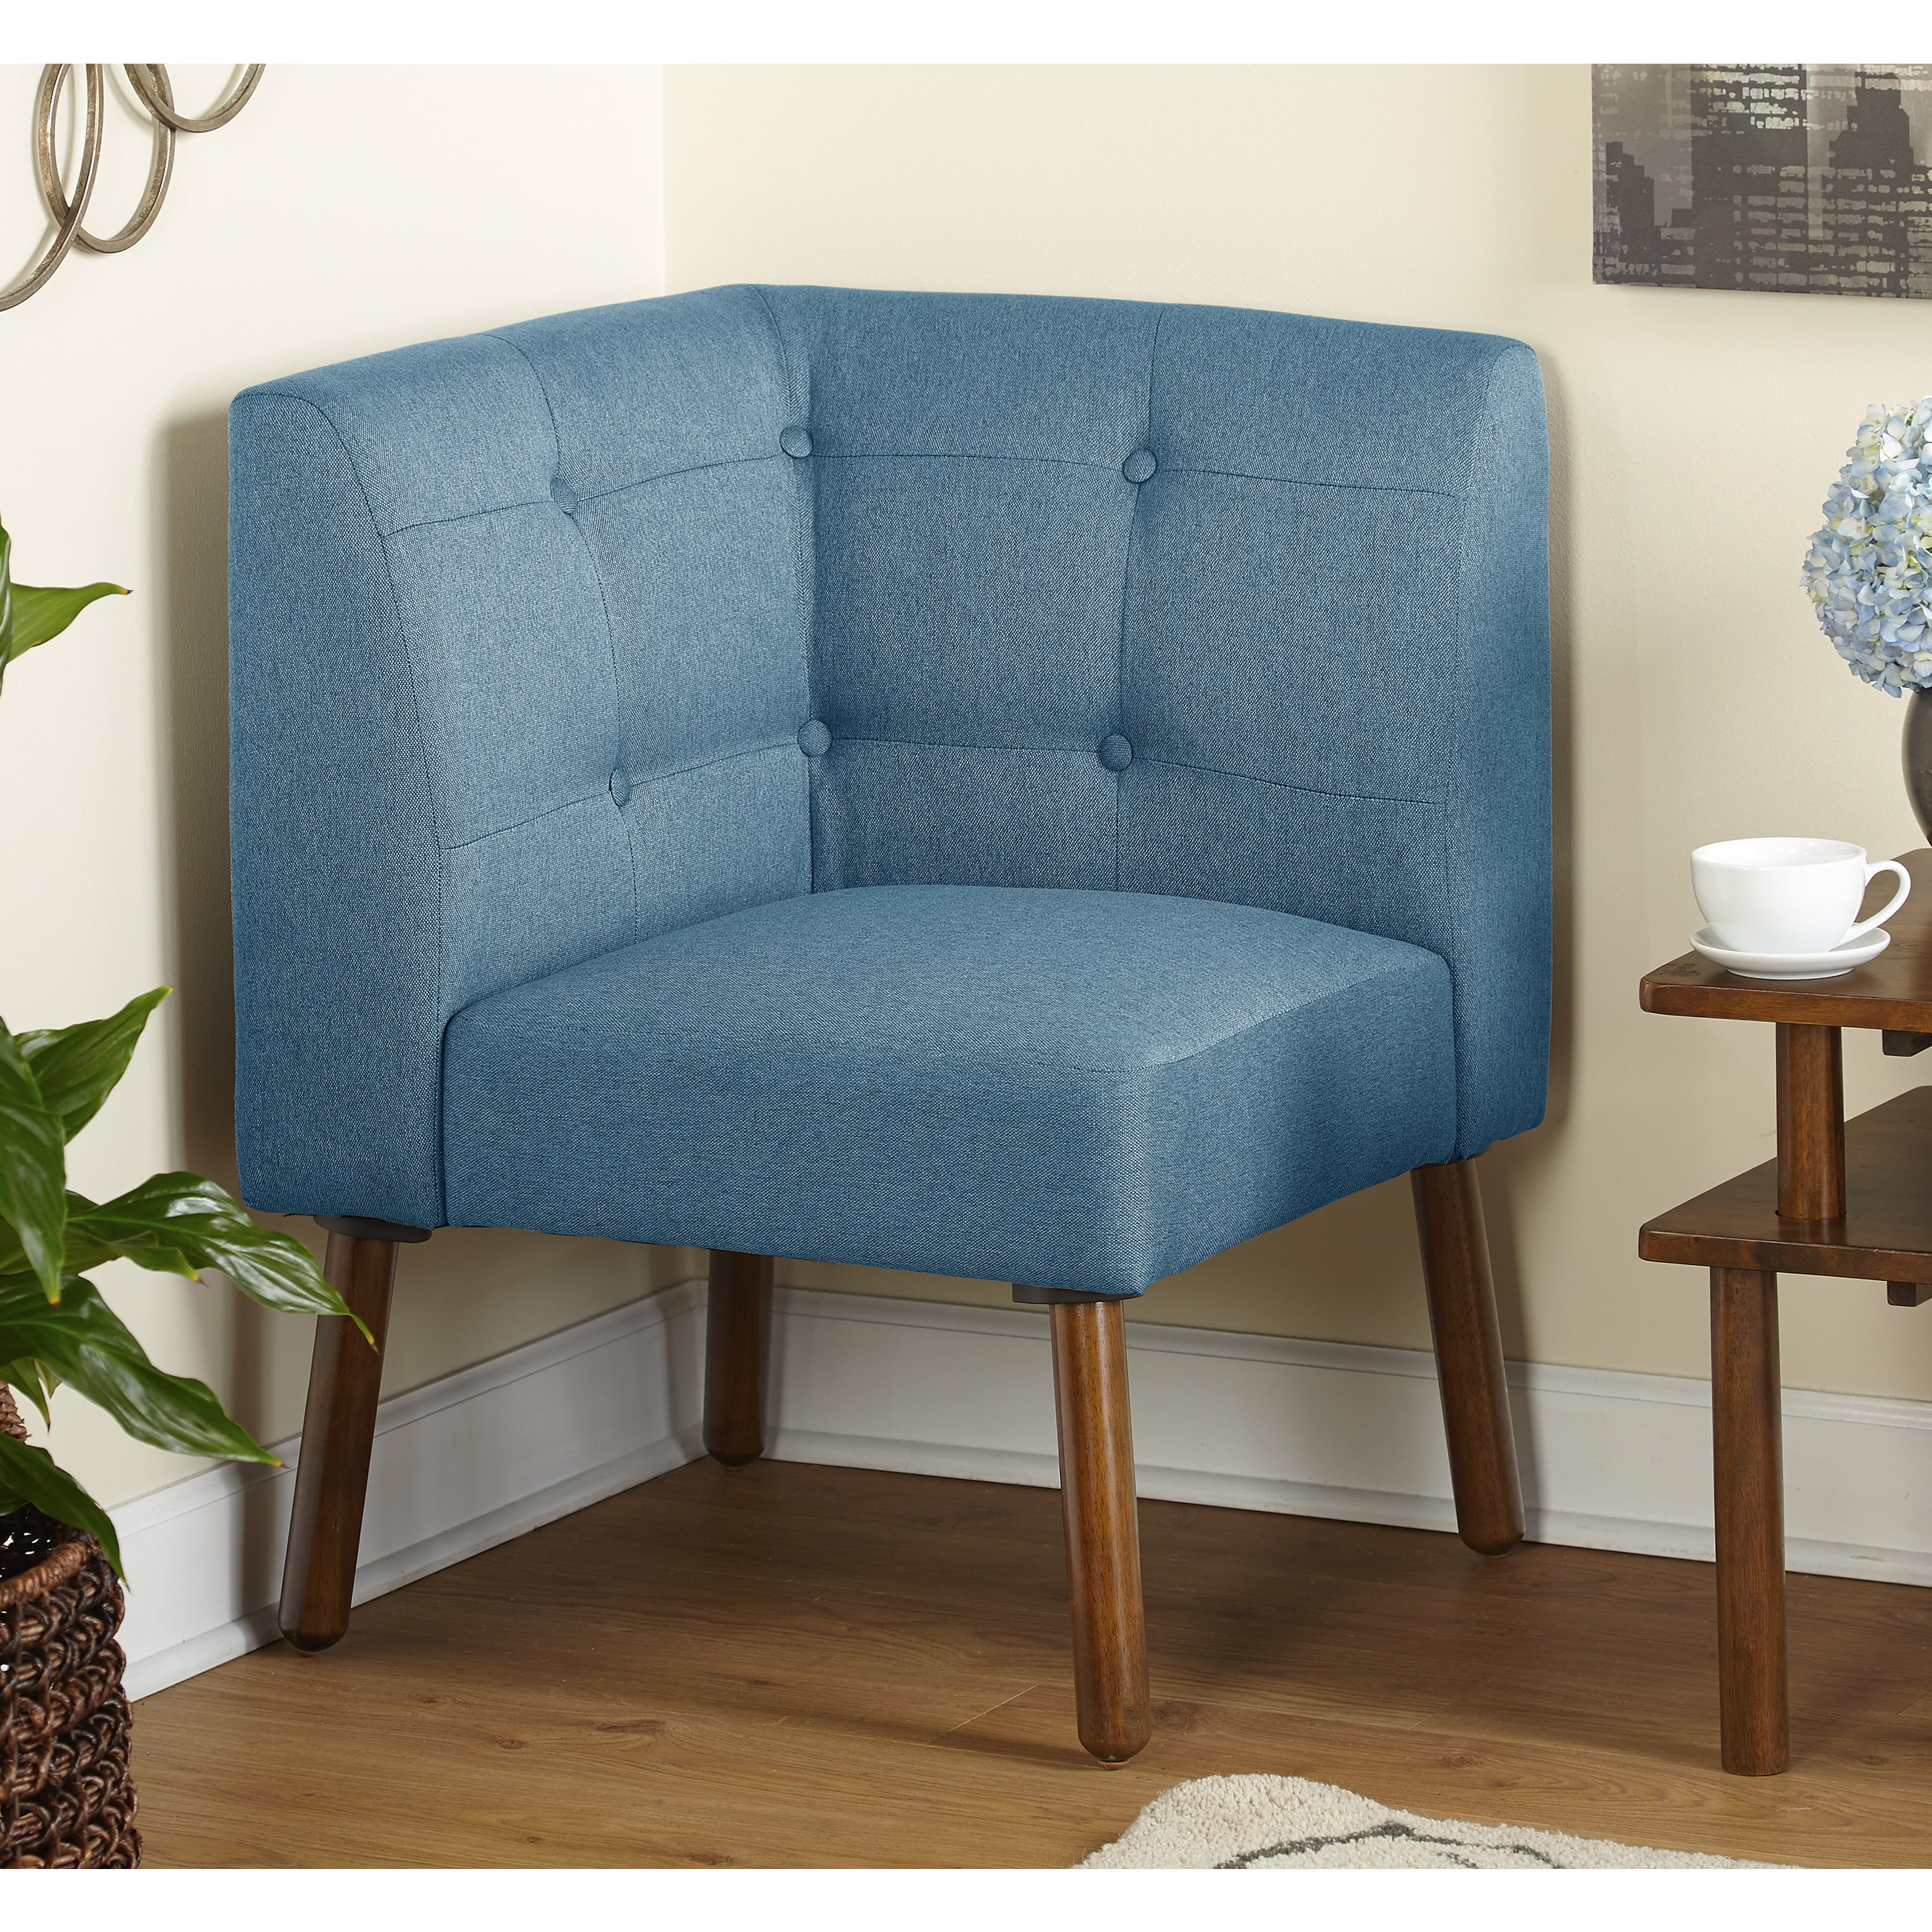 Simple Living Wood Fabric Playmate Corner Chair Ships To Canada 13164460